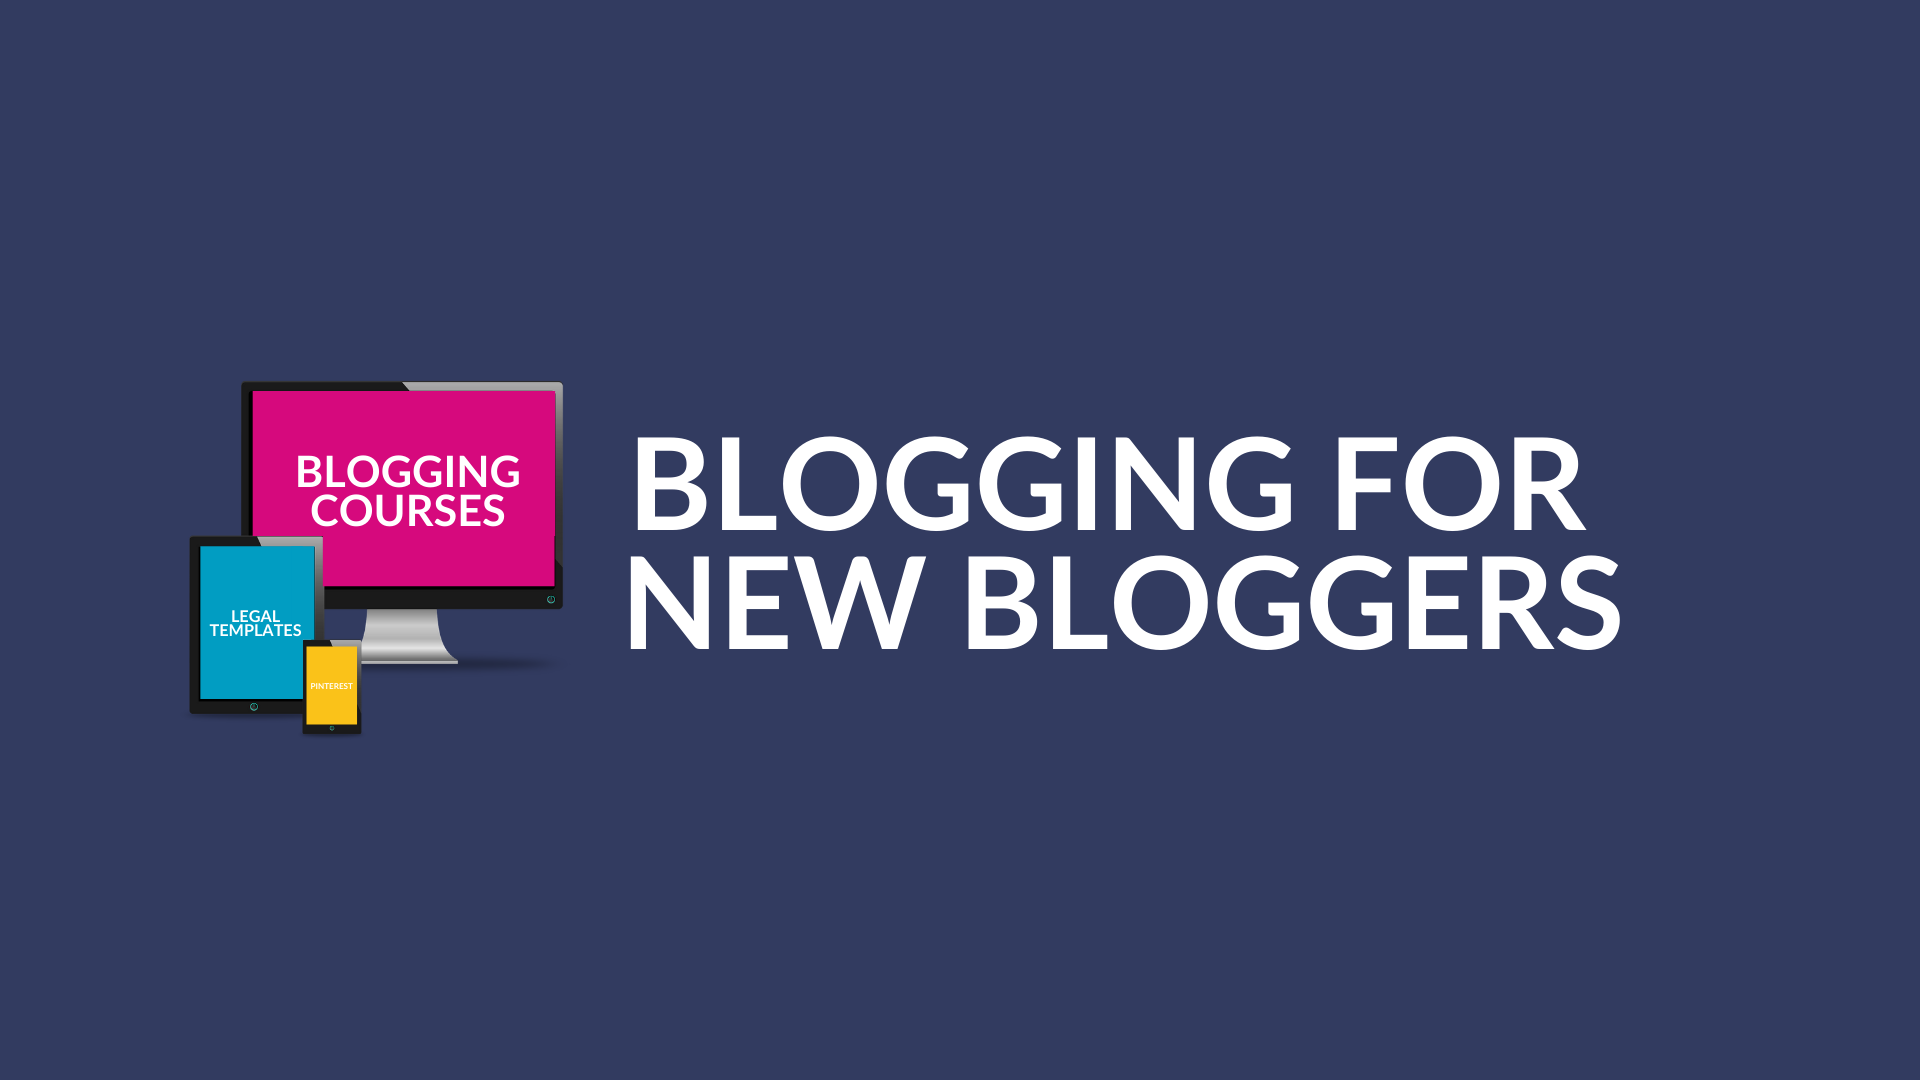 Blogging for New Bloggers Banner